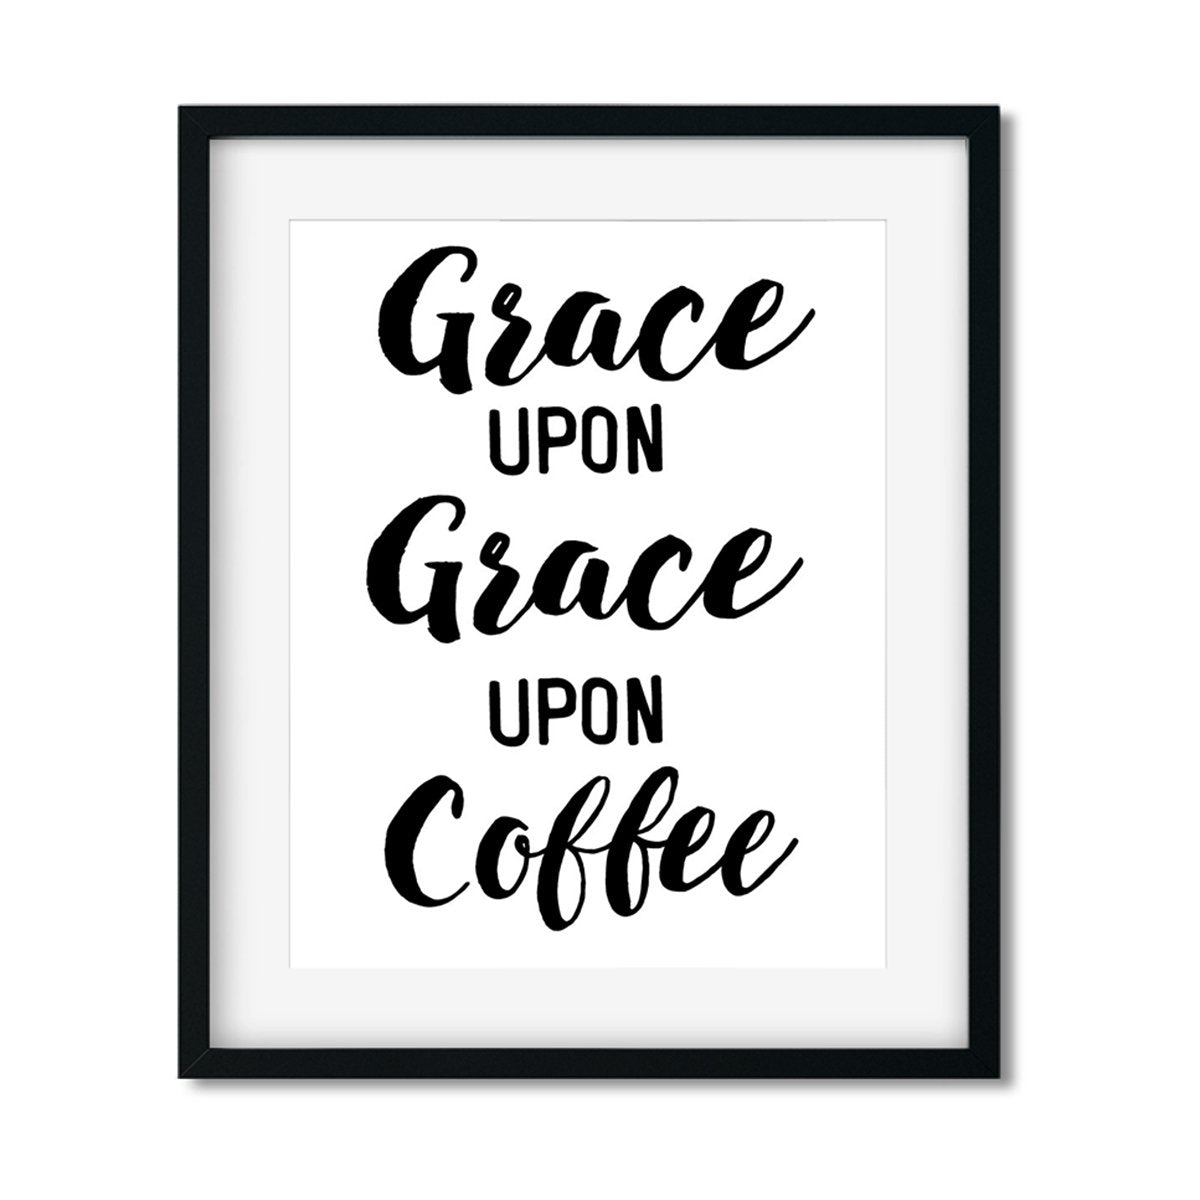 Grace upon Grace - Art Print - Netties Expressions